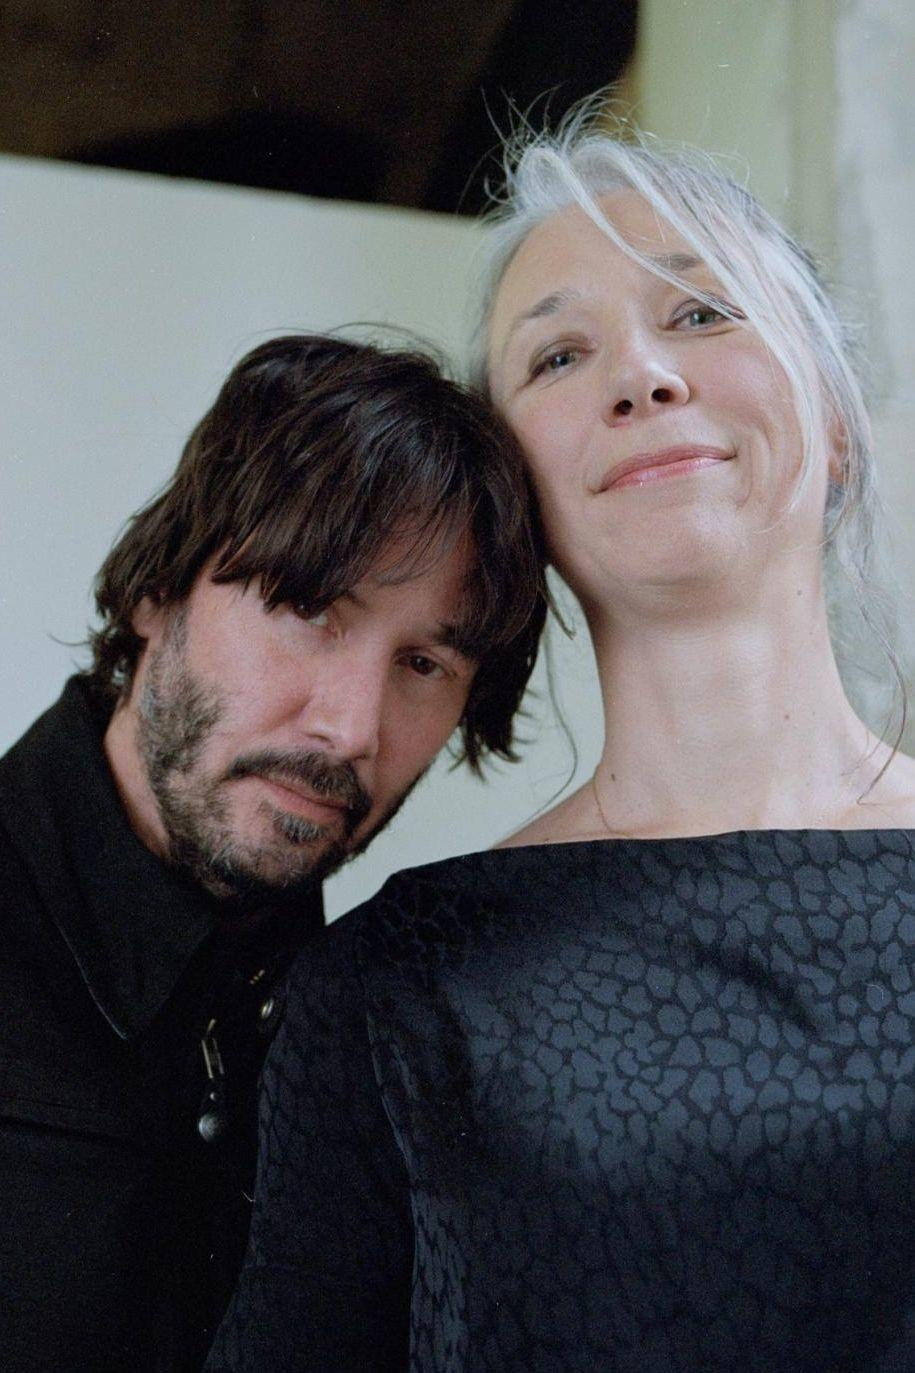 Keanu Reeves Fell In Love With Alexandra Because She Helped Him Get Over ExGirlfriends Death